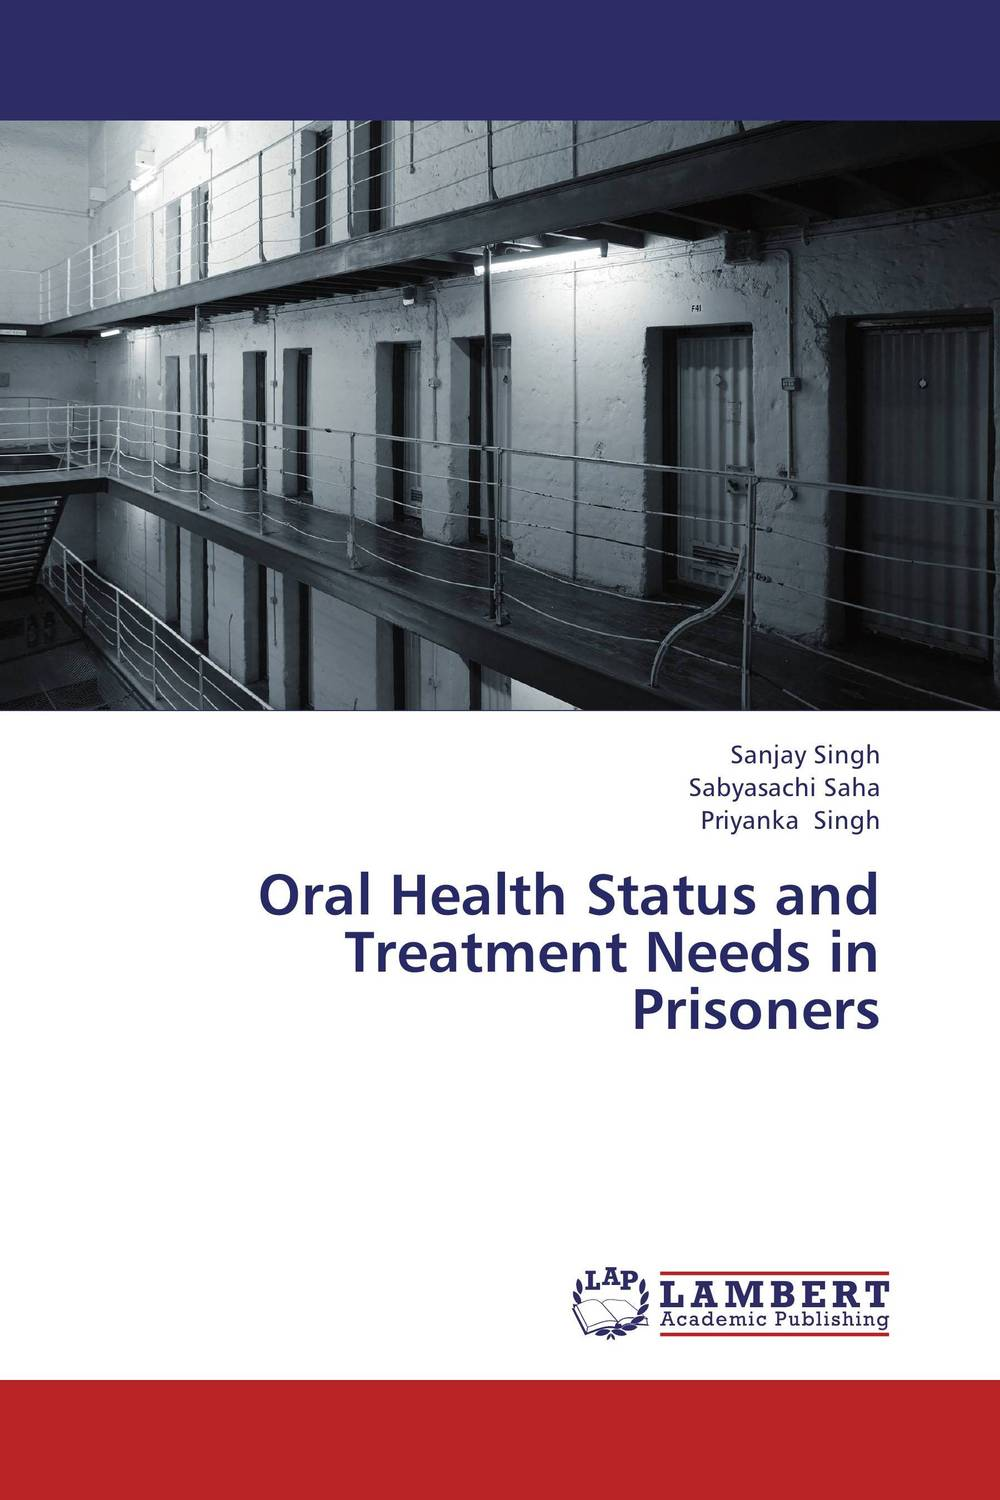 Oral Health Status and Treatment Needs in Prisoners radiographic assessment of oral health using orthopantomogram